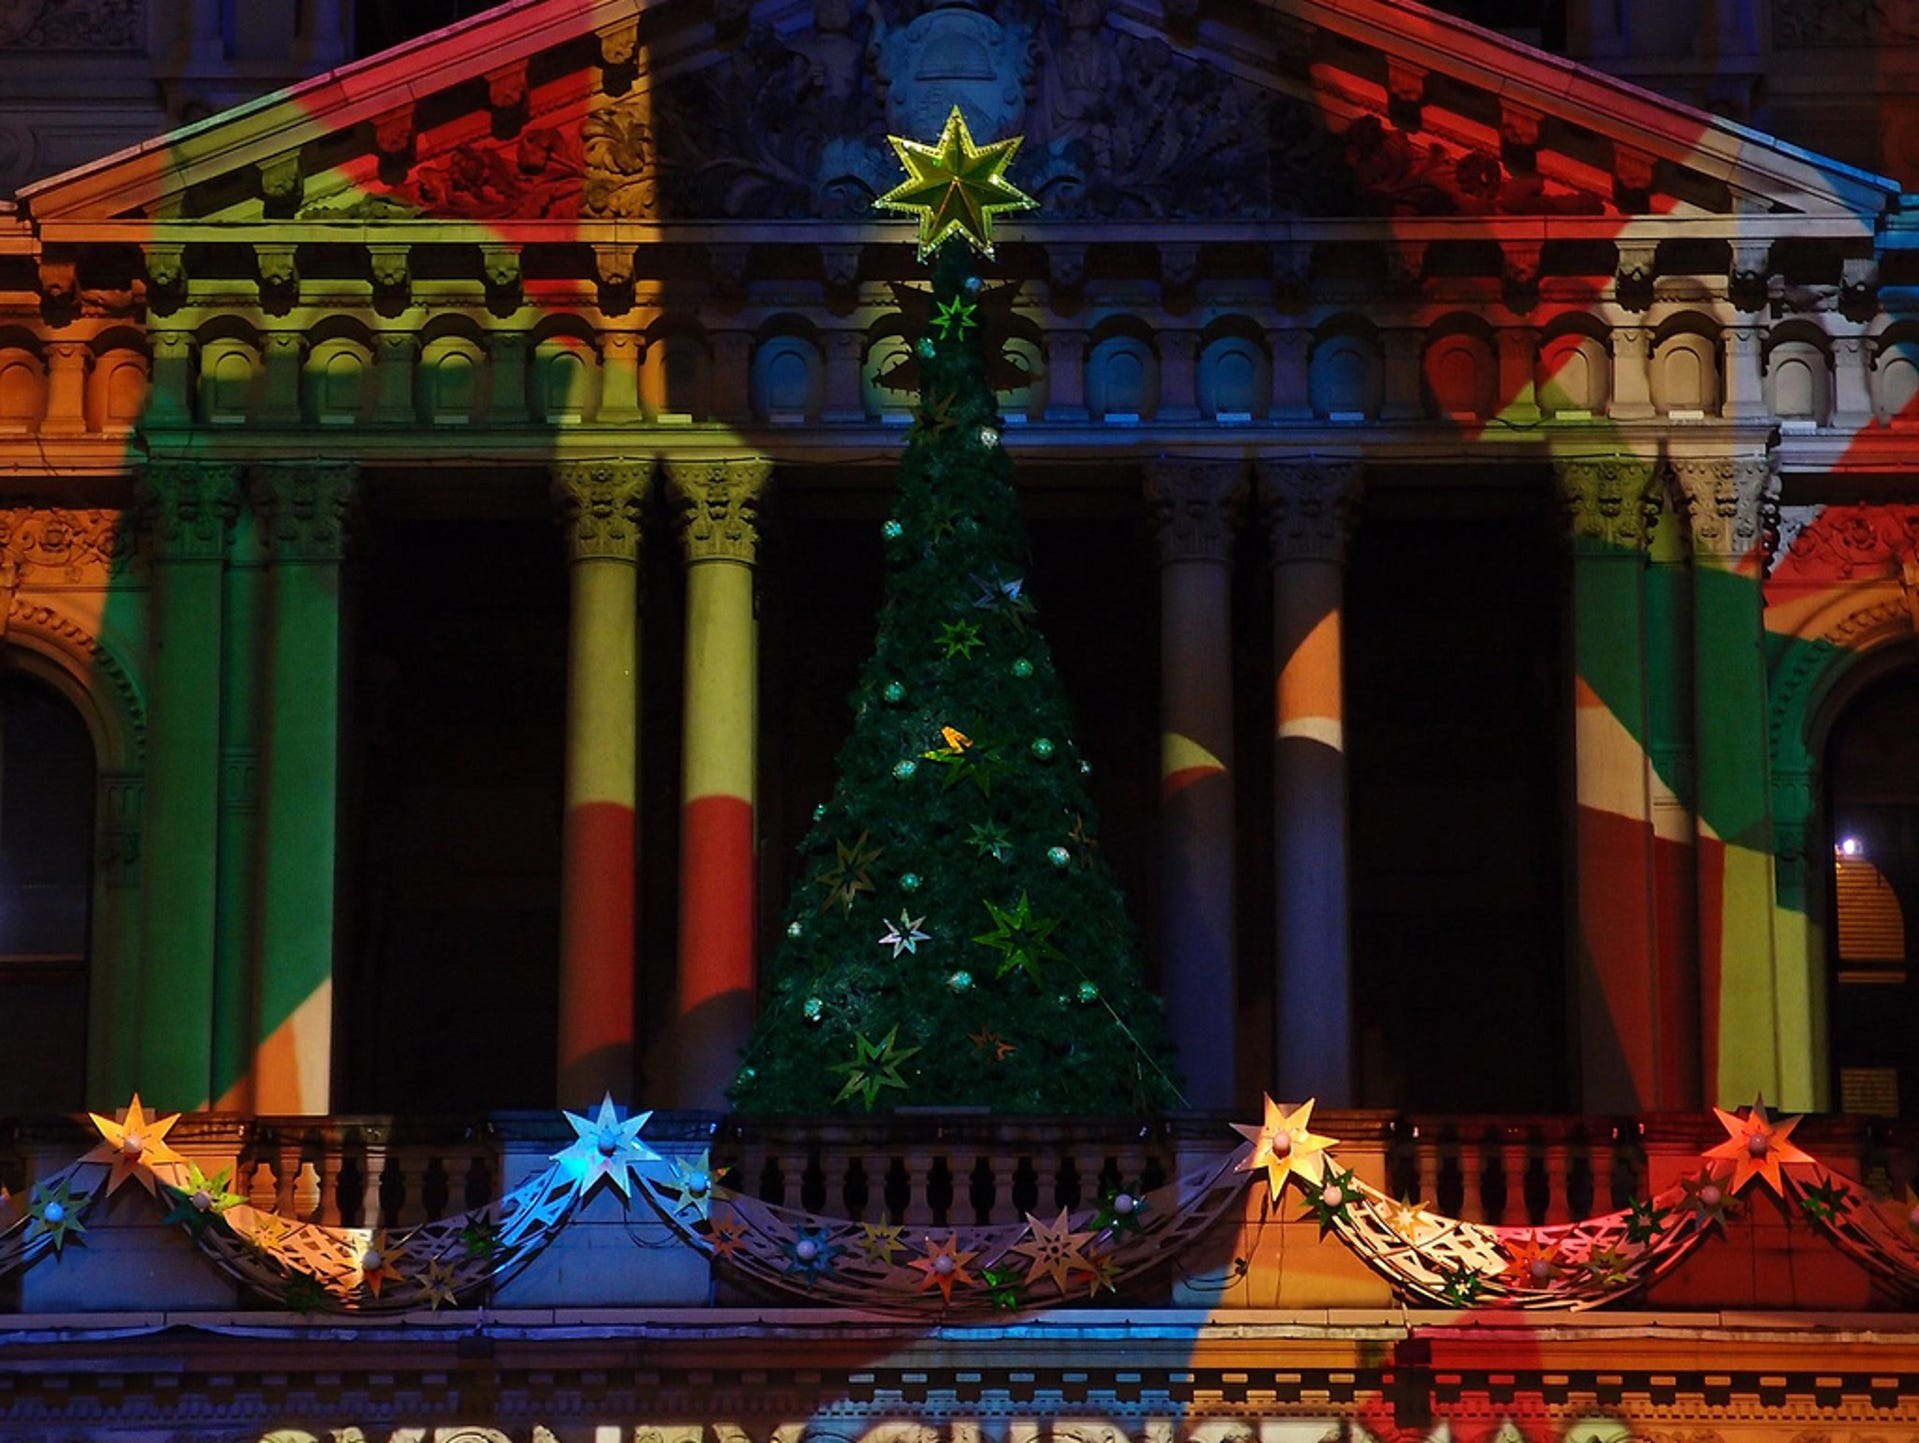 Merry Christmas from the festive Town Hall in Sydney,